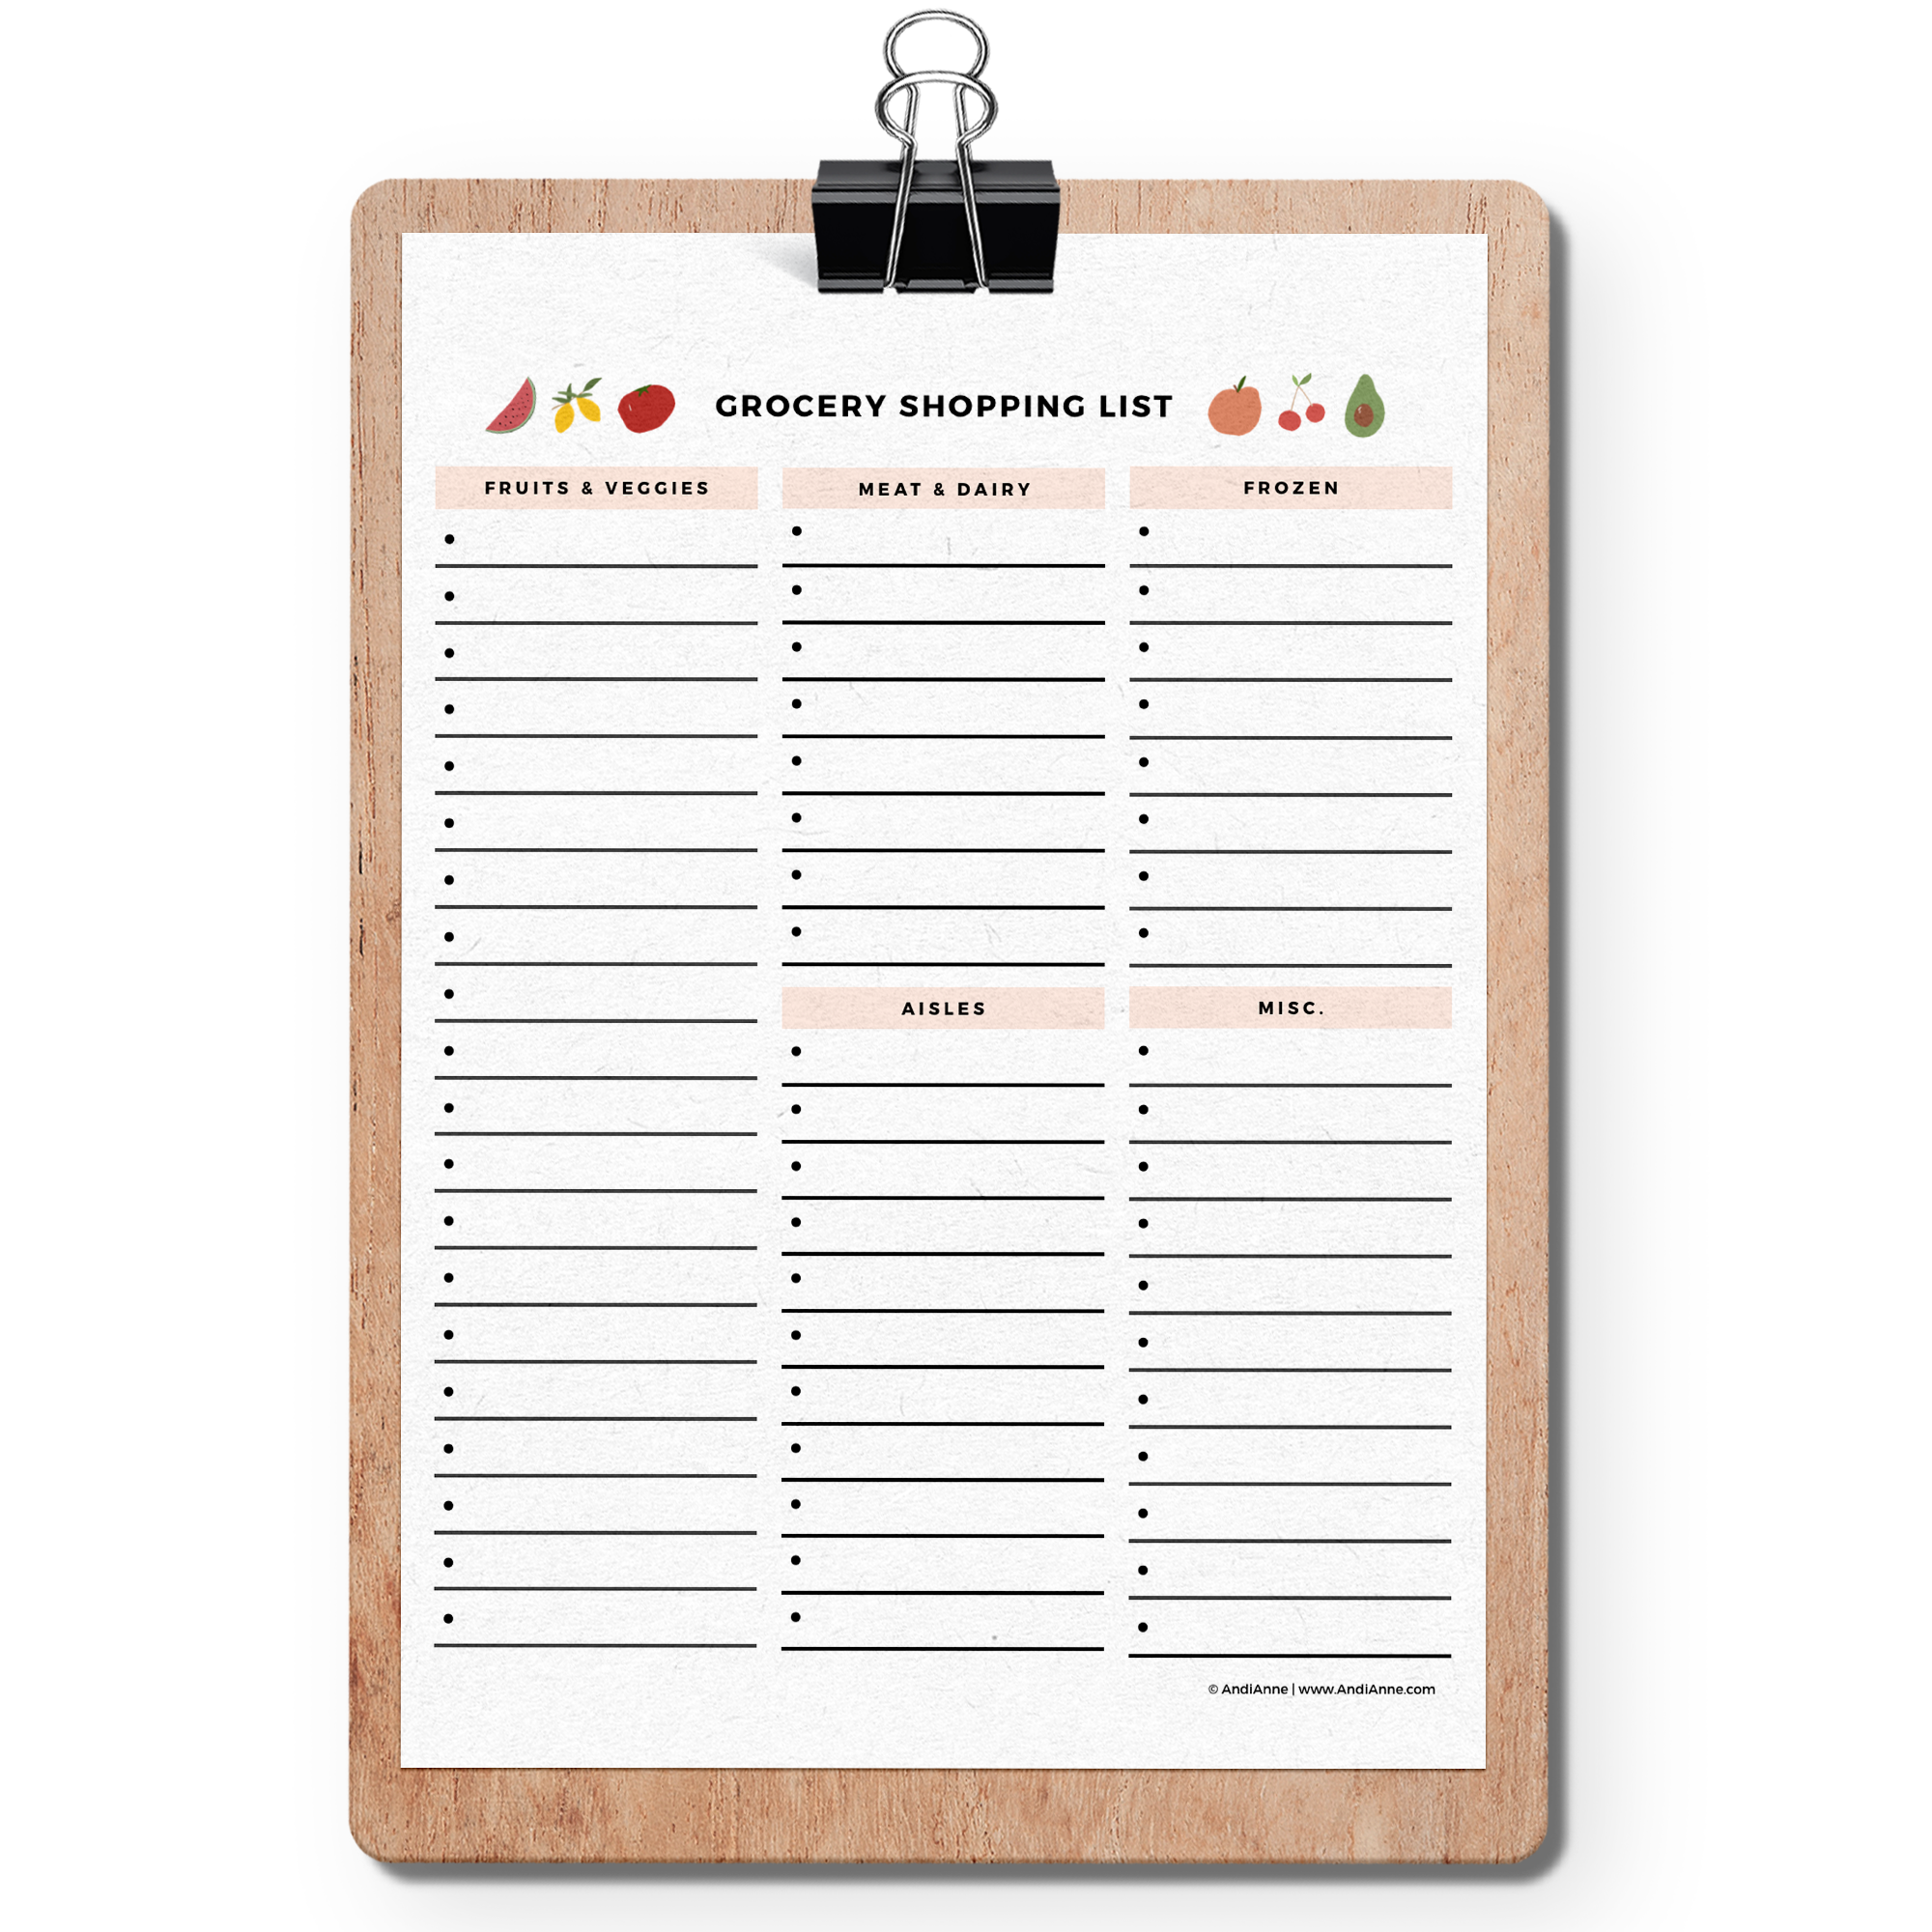 It's just a photo of Printable Grocery Shopping List for downloadable